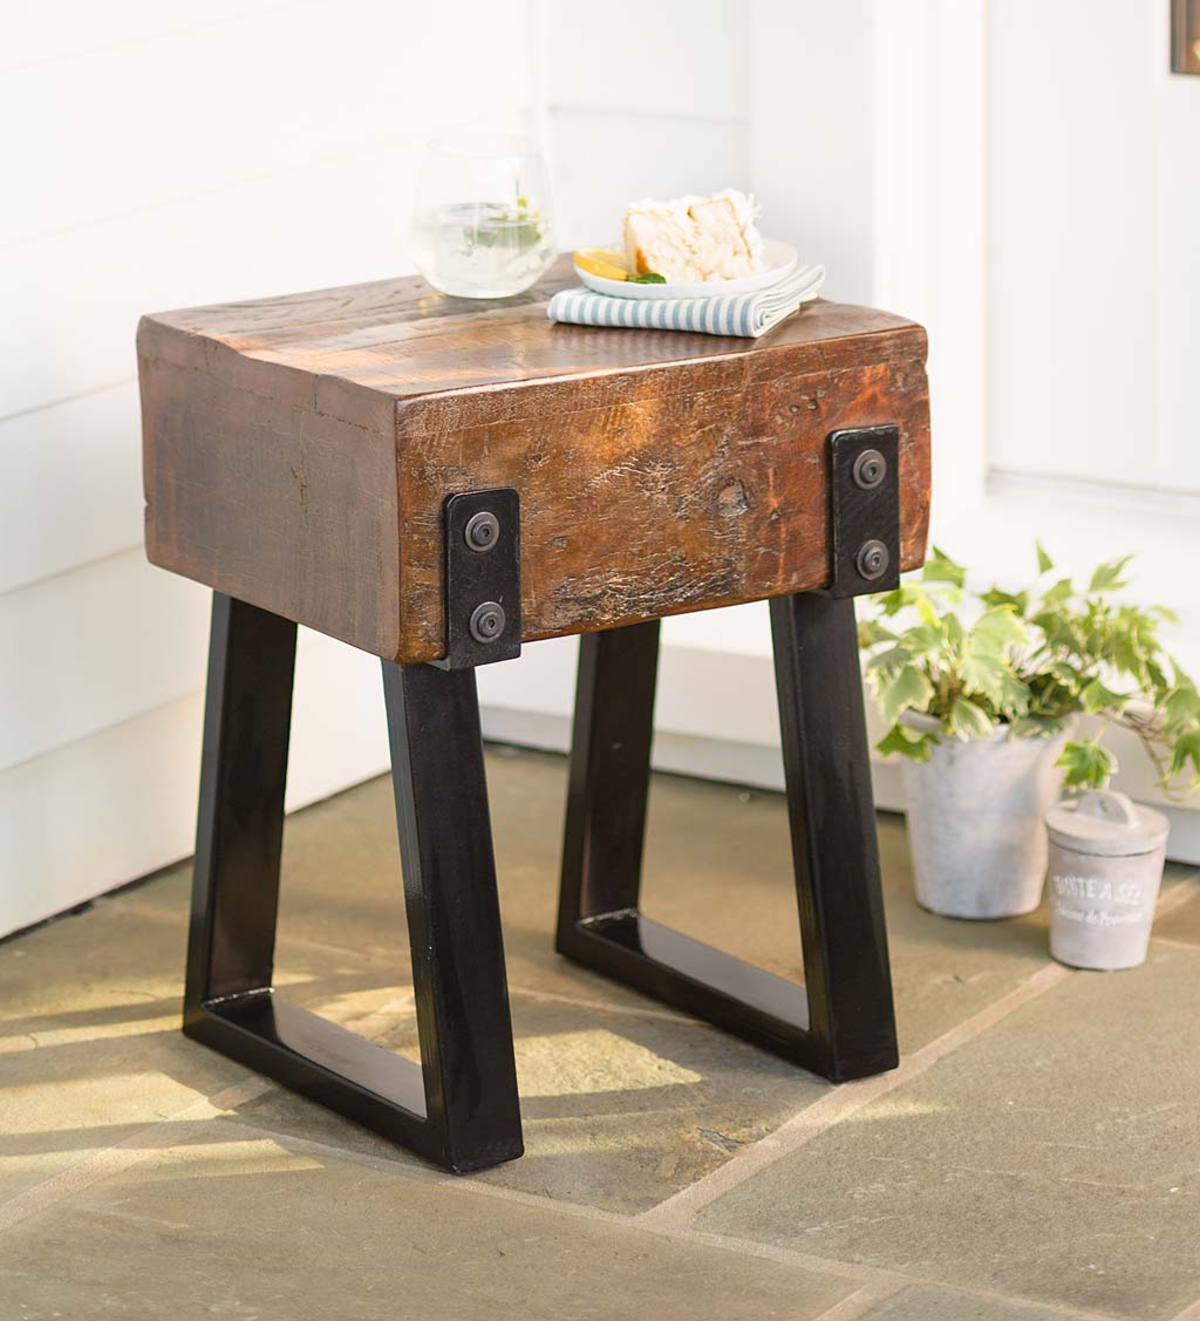 Richland Indoor/Outdoor Reclaimed Wood Stool/Side Table